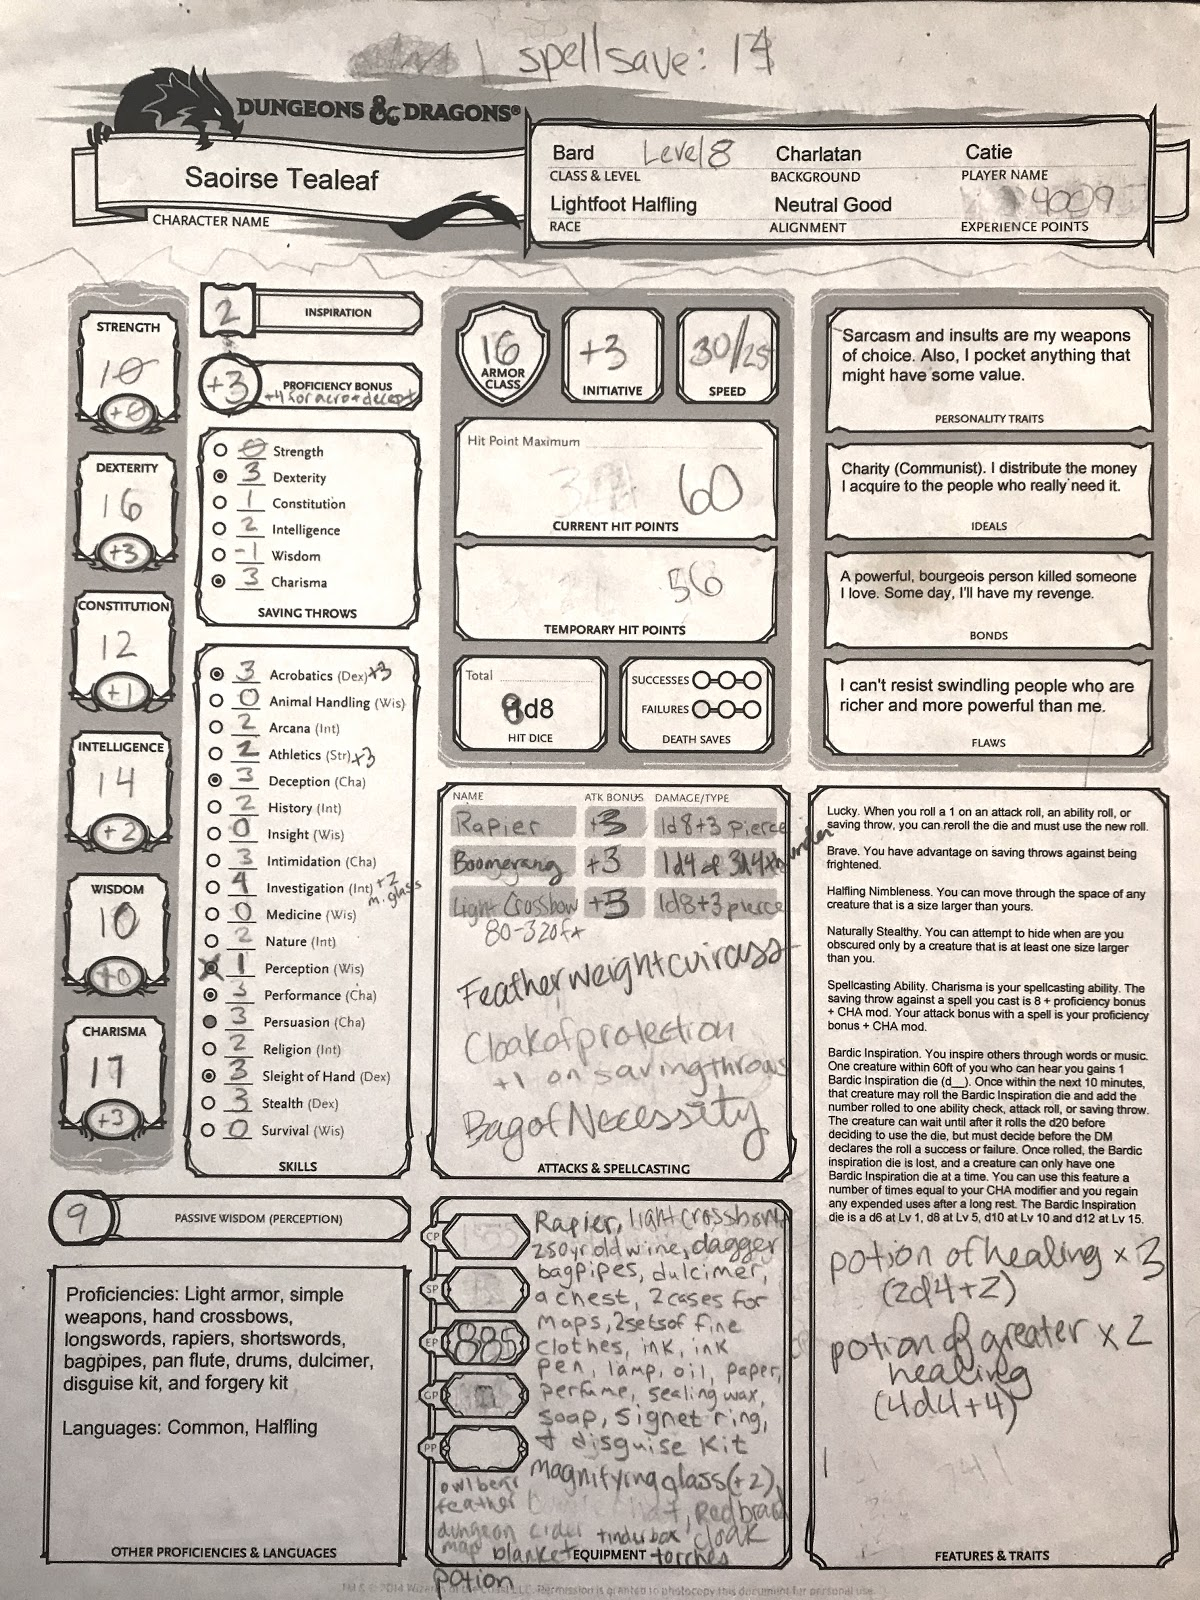 """- The ProblemPaper character sheets can become messy and unorganized over long D&D campaigns, which can result in inaccurate data and a confusing leveling up experience for players.My ObjectiveCreate a digital character sheet app that streamlines character management while preserving the analog """"spirit"""" of tabletop roleplaying games."""